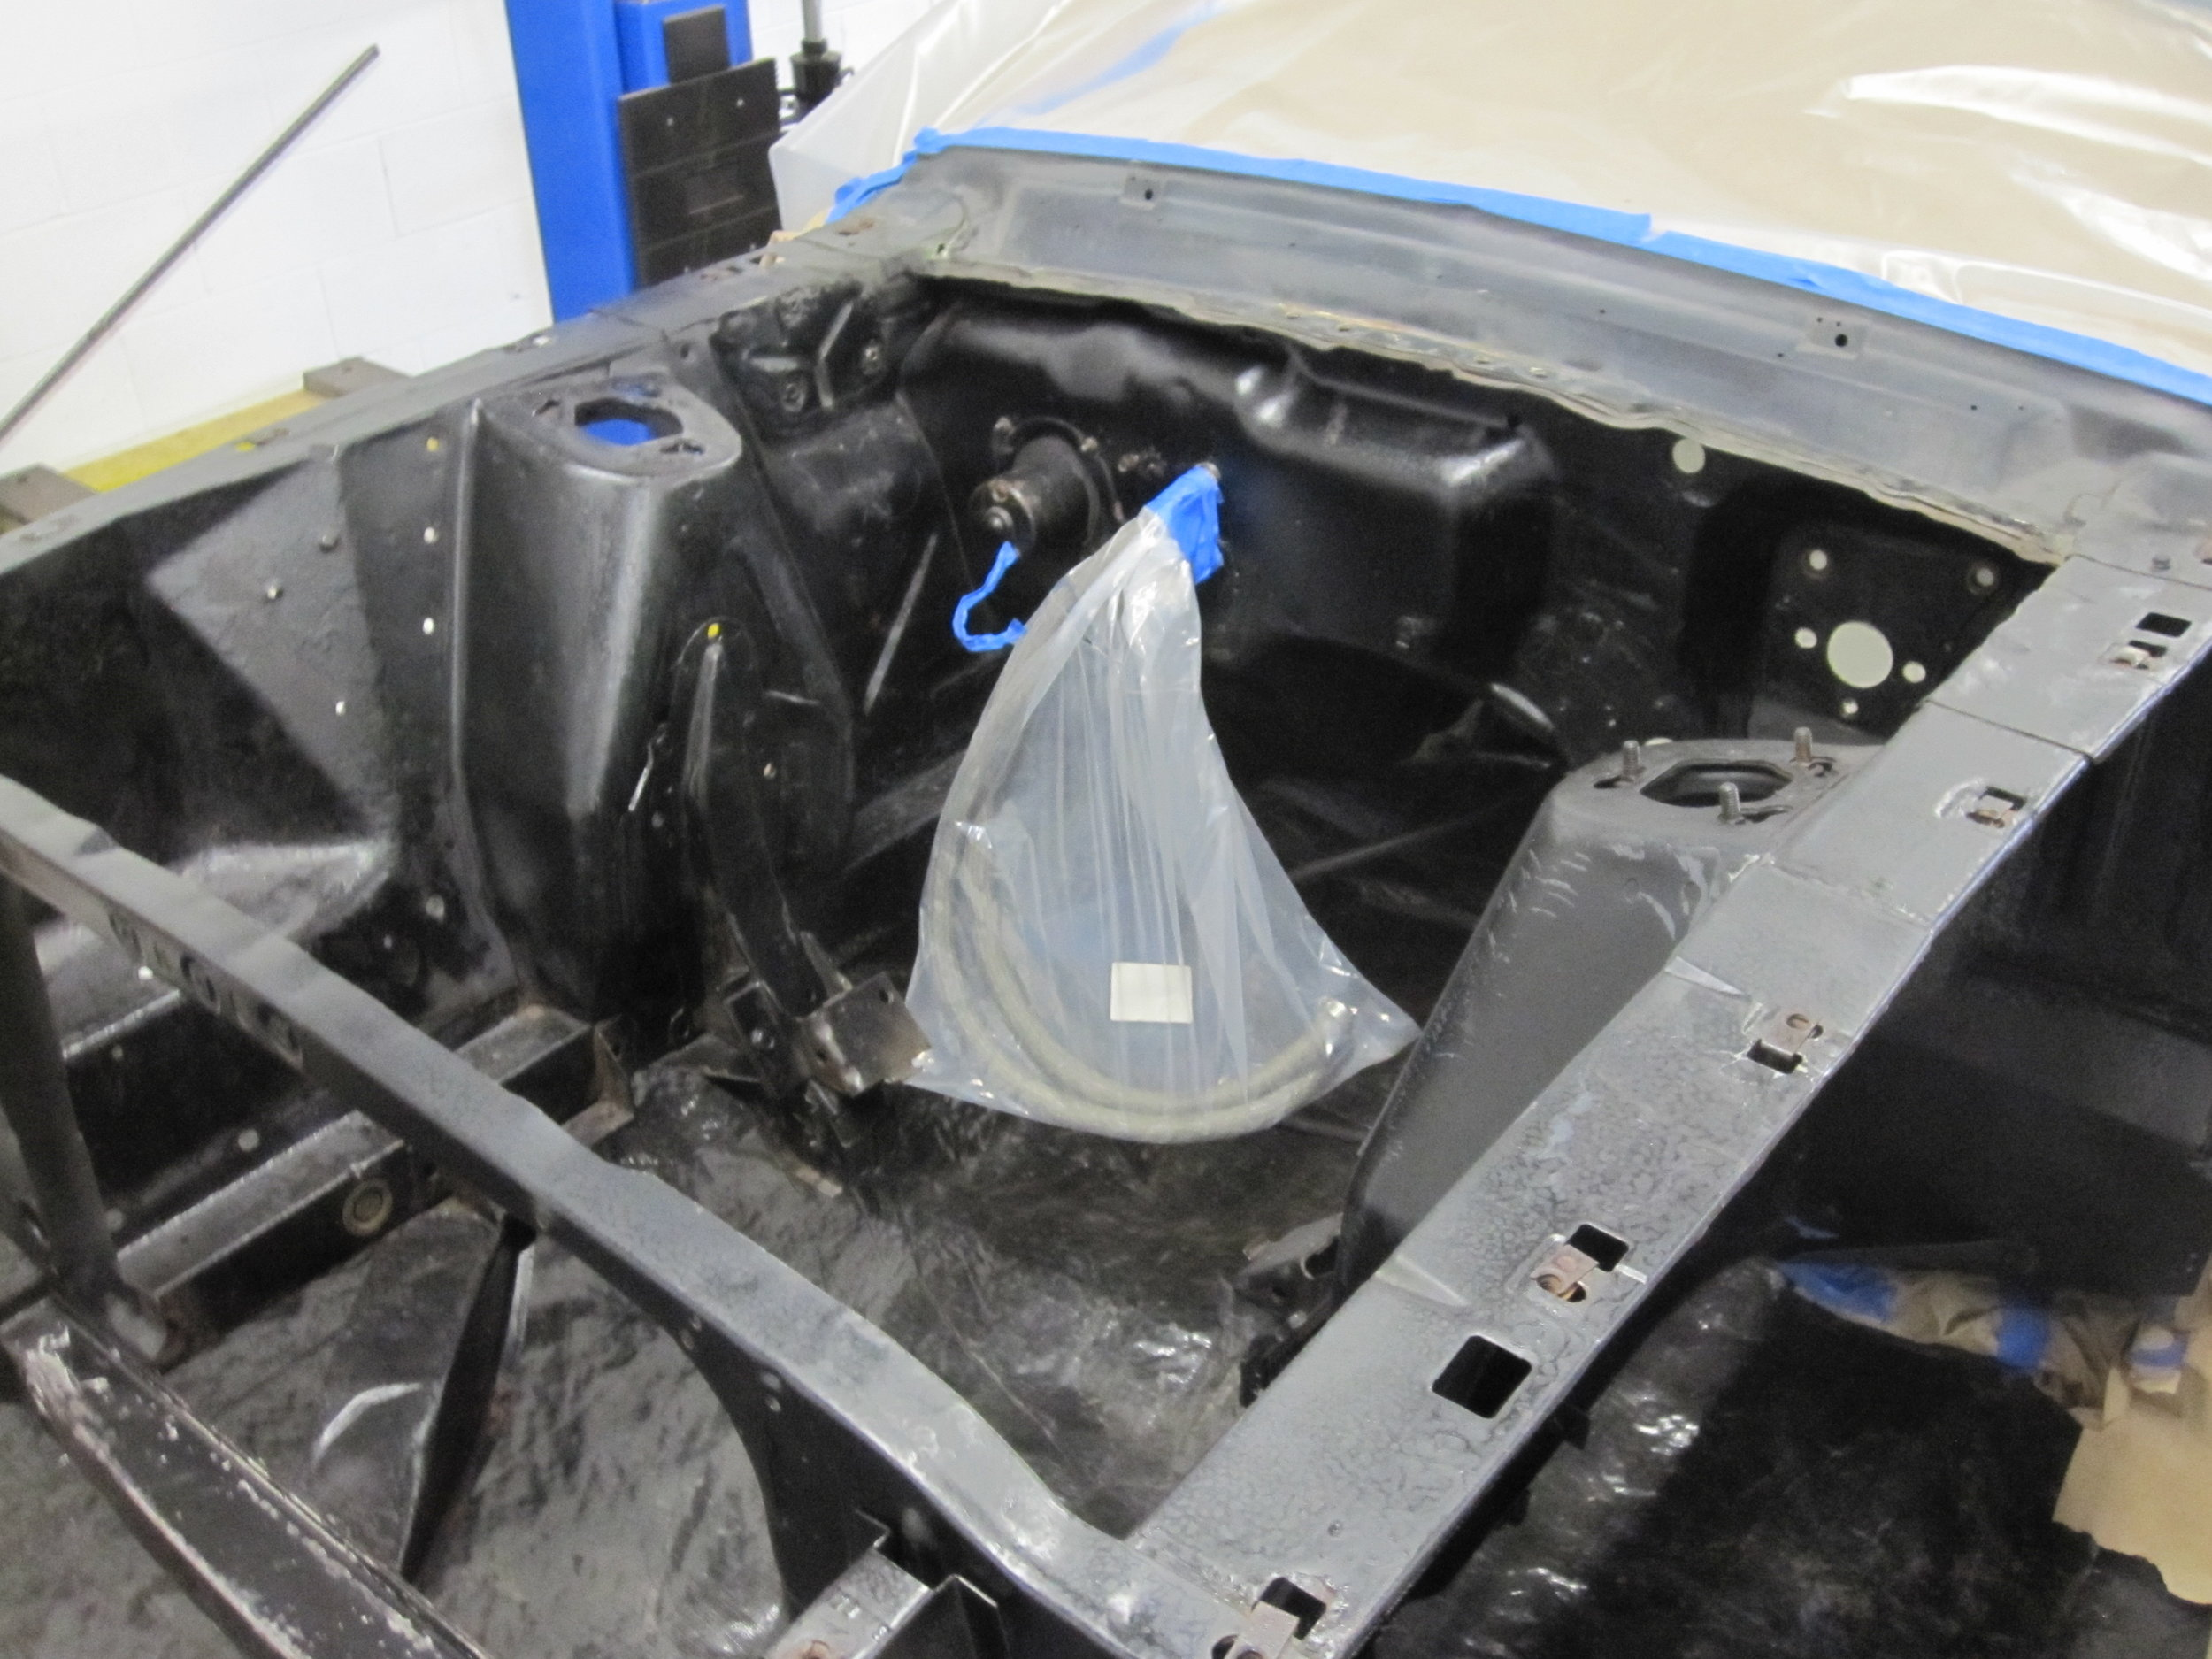 1968 Ford Mustang custom car restoration 2.JPG